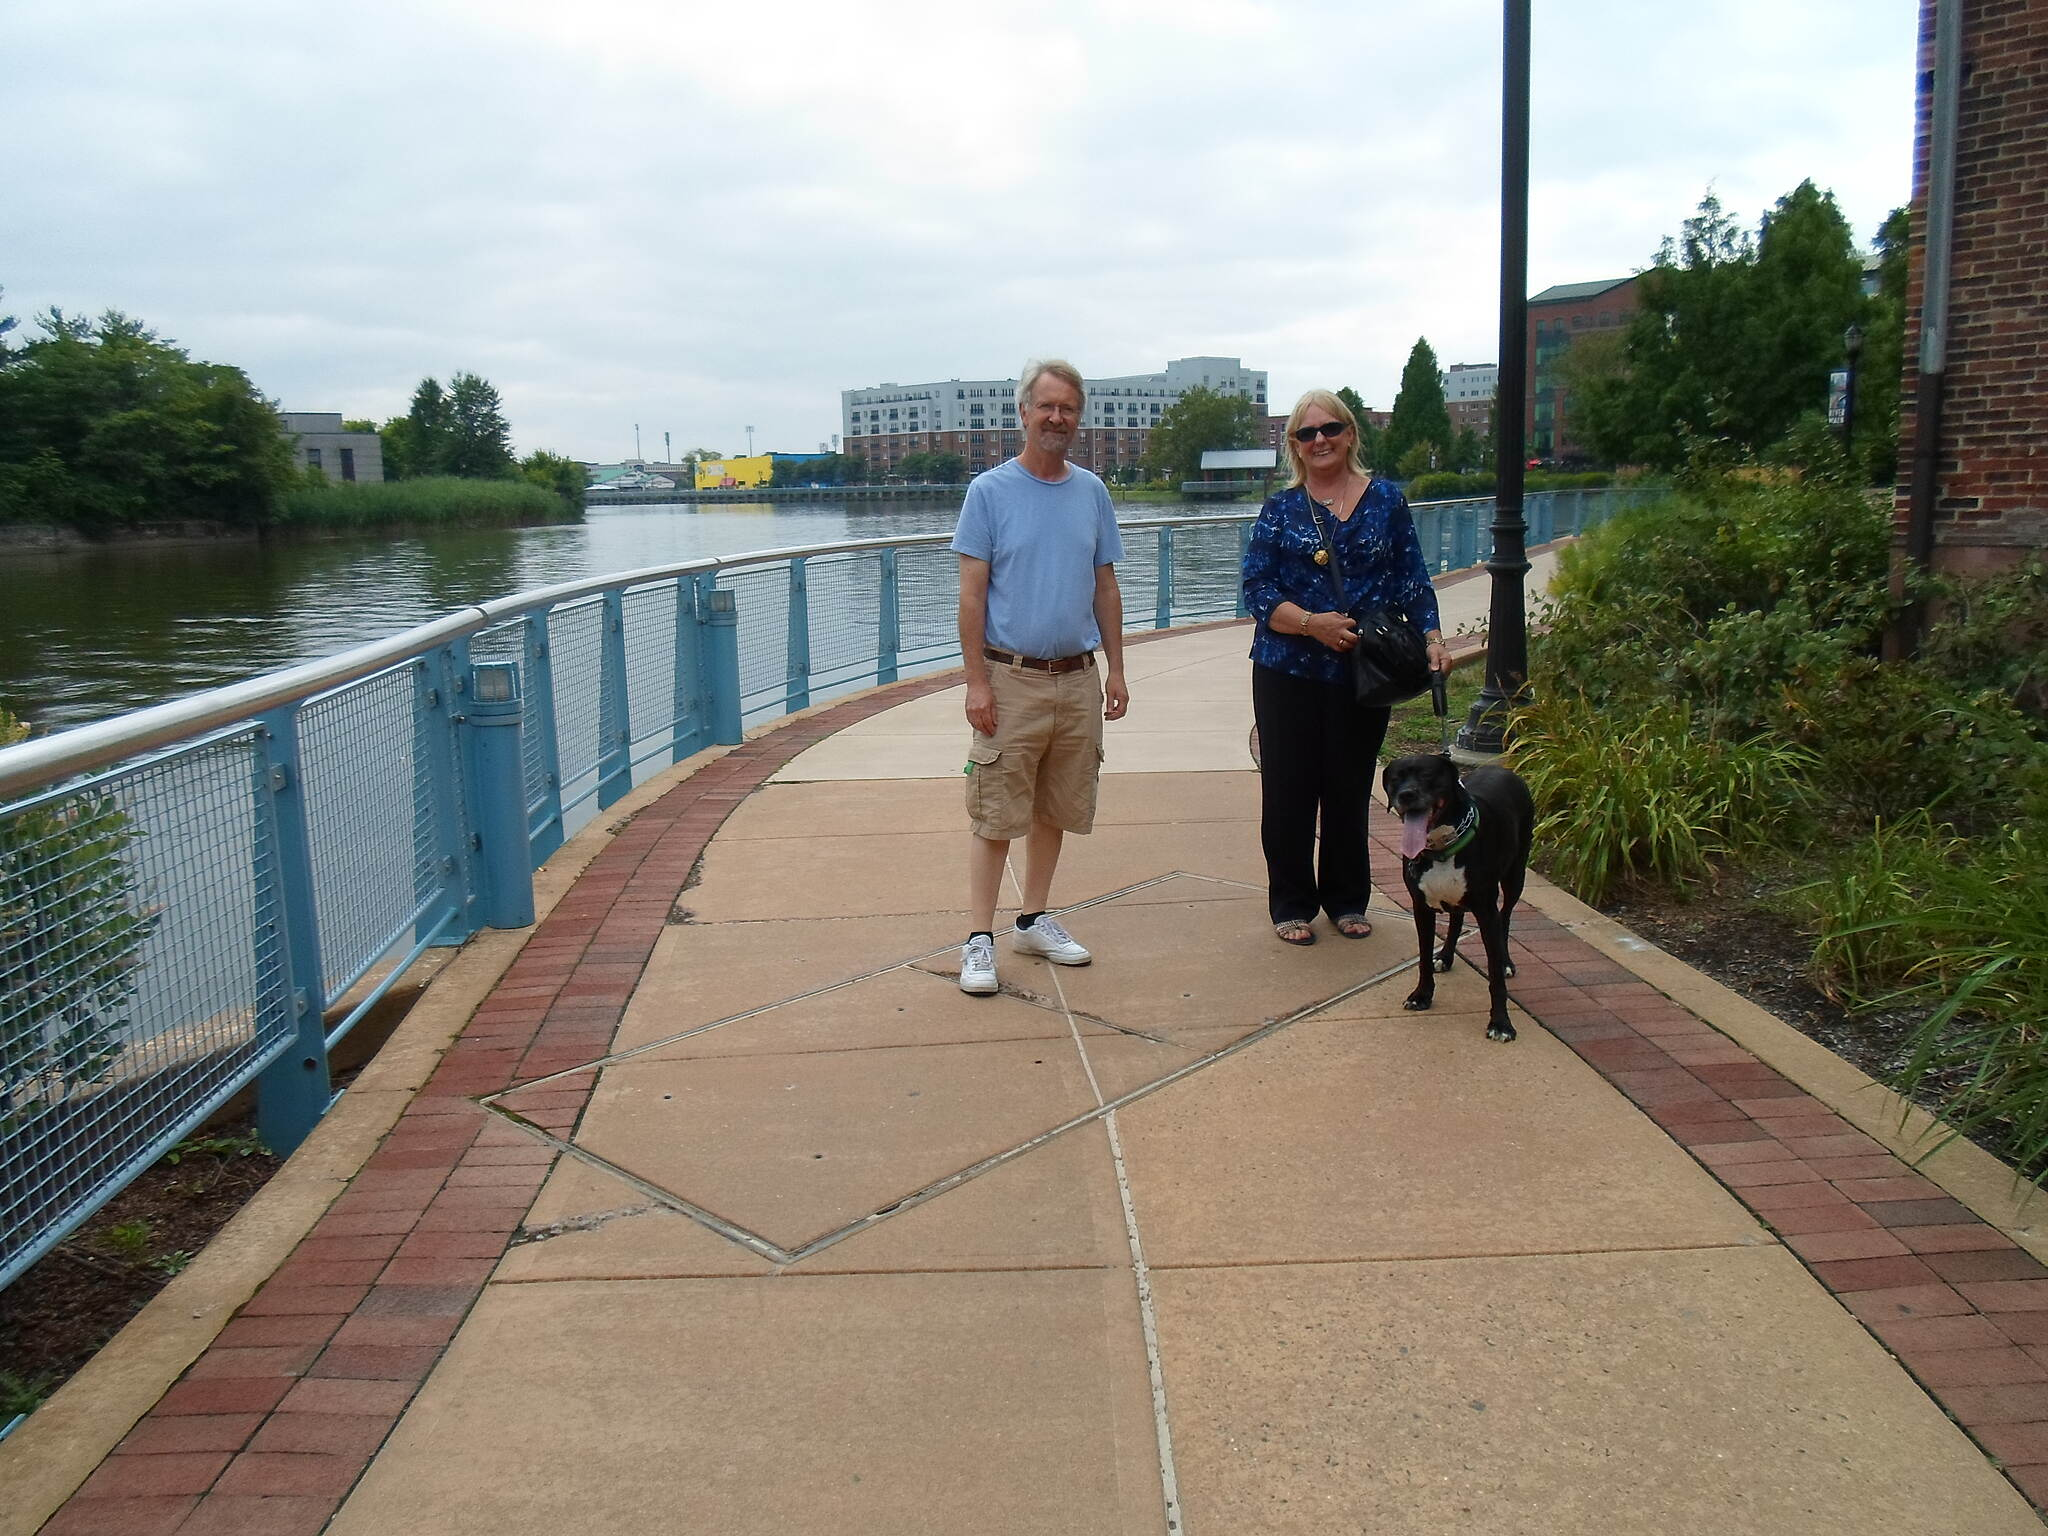 Christina Riverwalk Christina Riverwalk Couple enjoying the day with their dog. Taken August 2014.